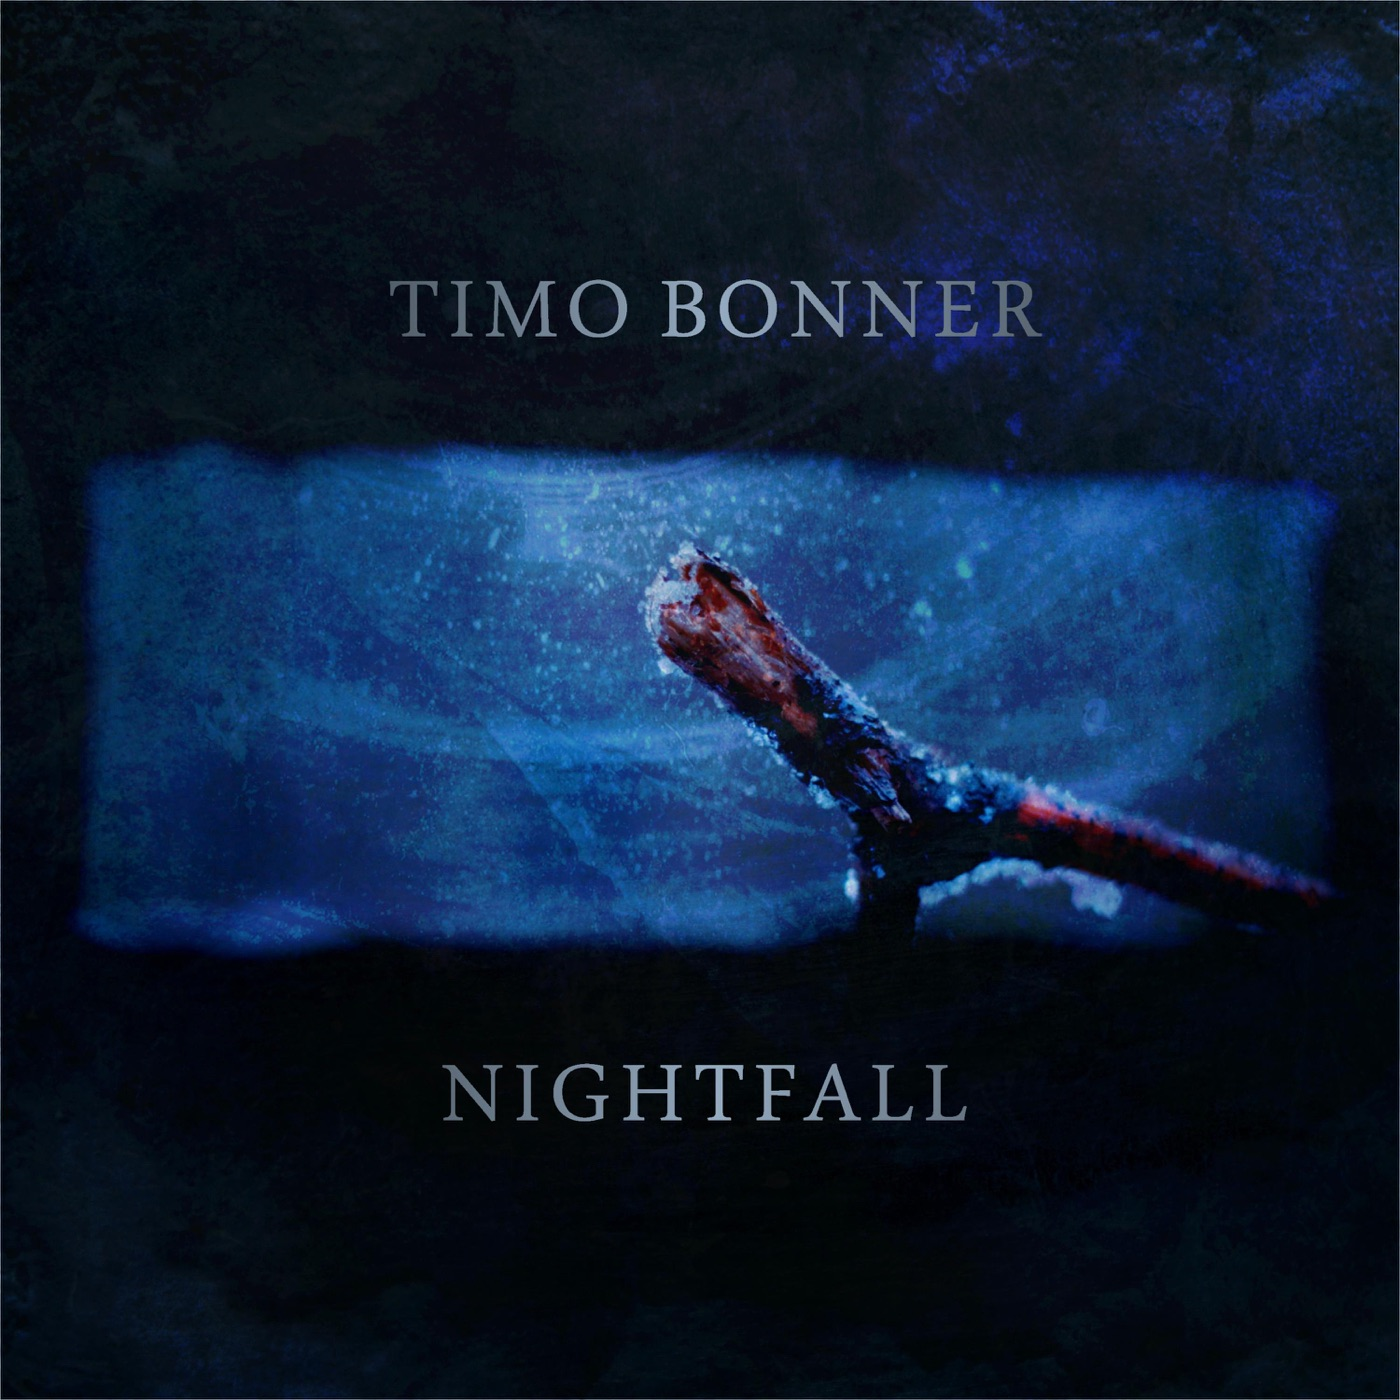 Timo Bonner - Nightfall [single] (2017)